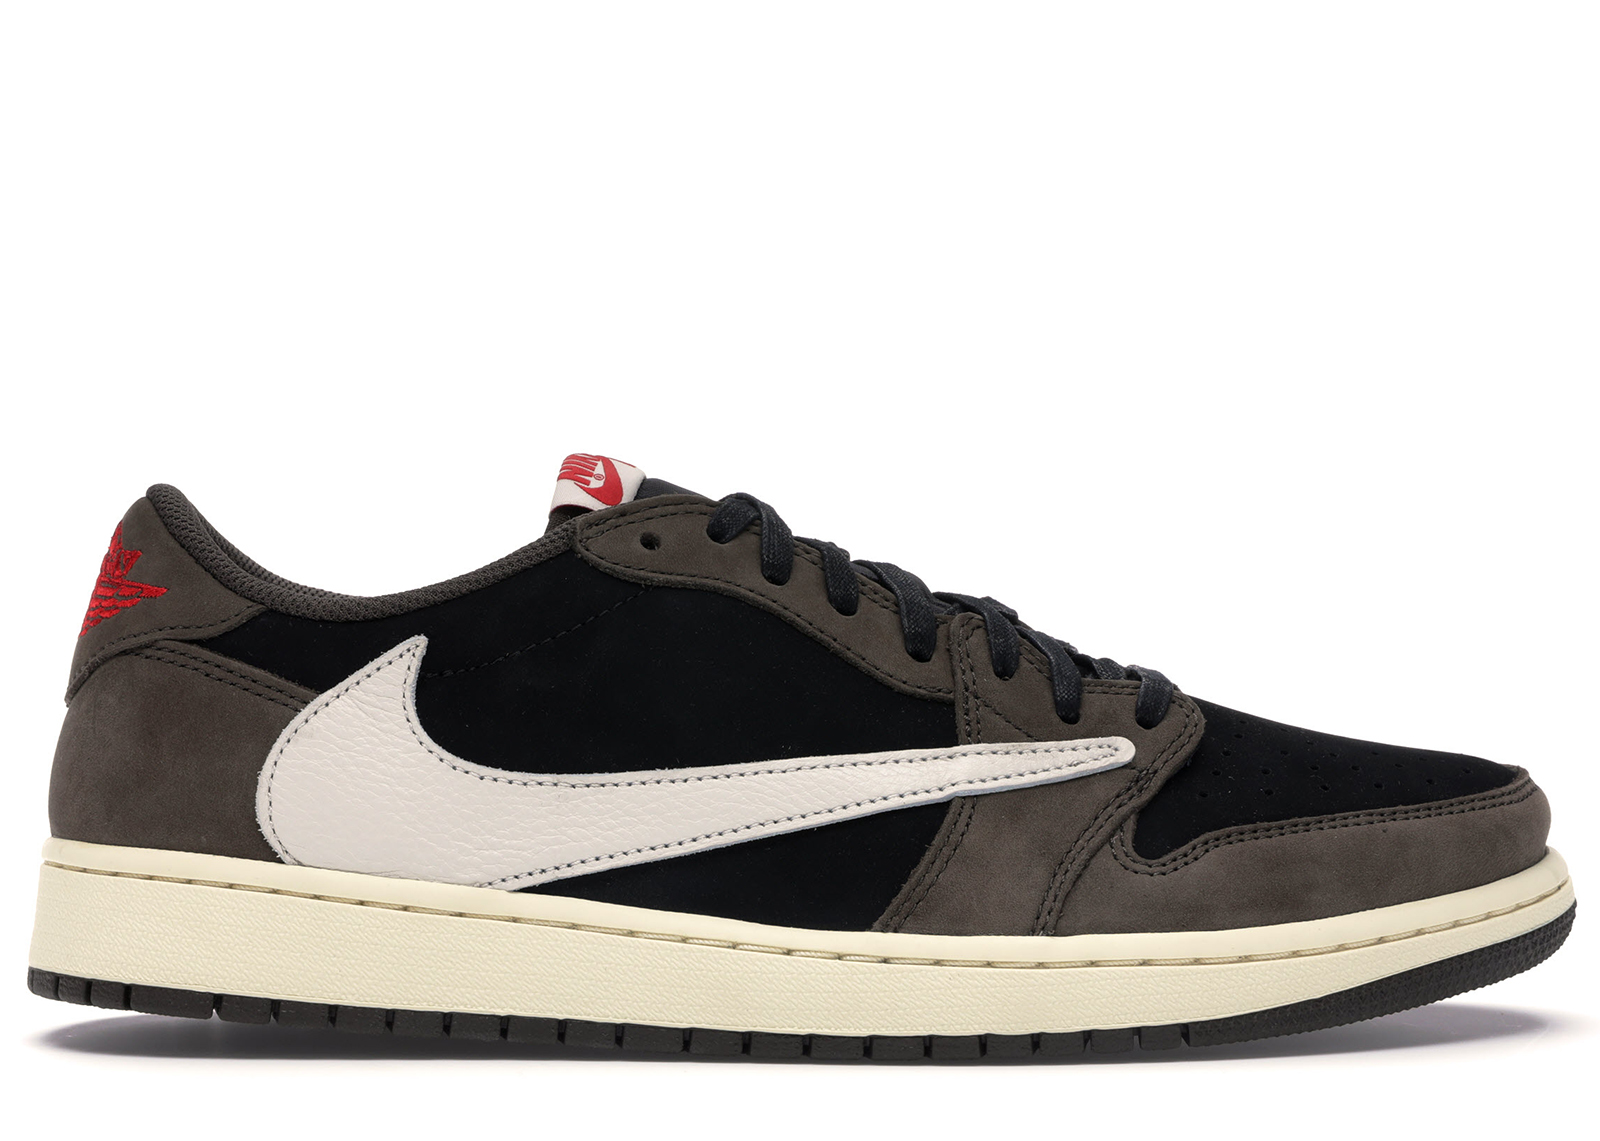 Jordan 1 Retro Low OG SP Travis Scott - CQ4277-001